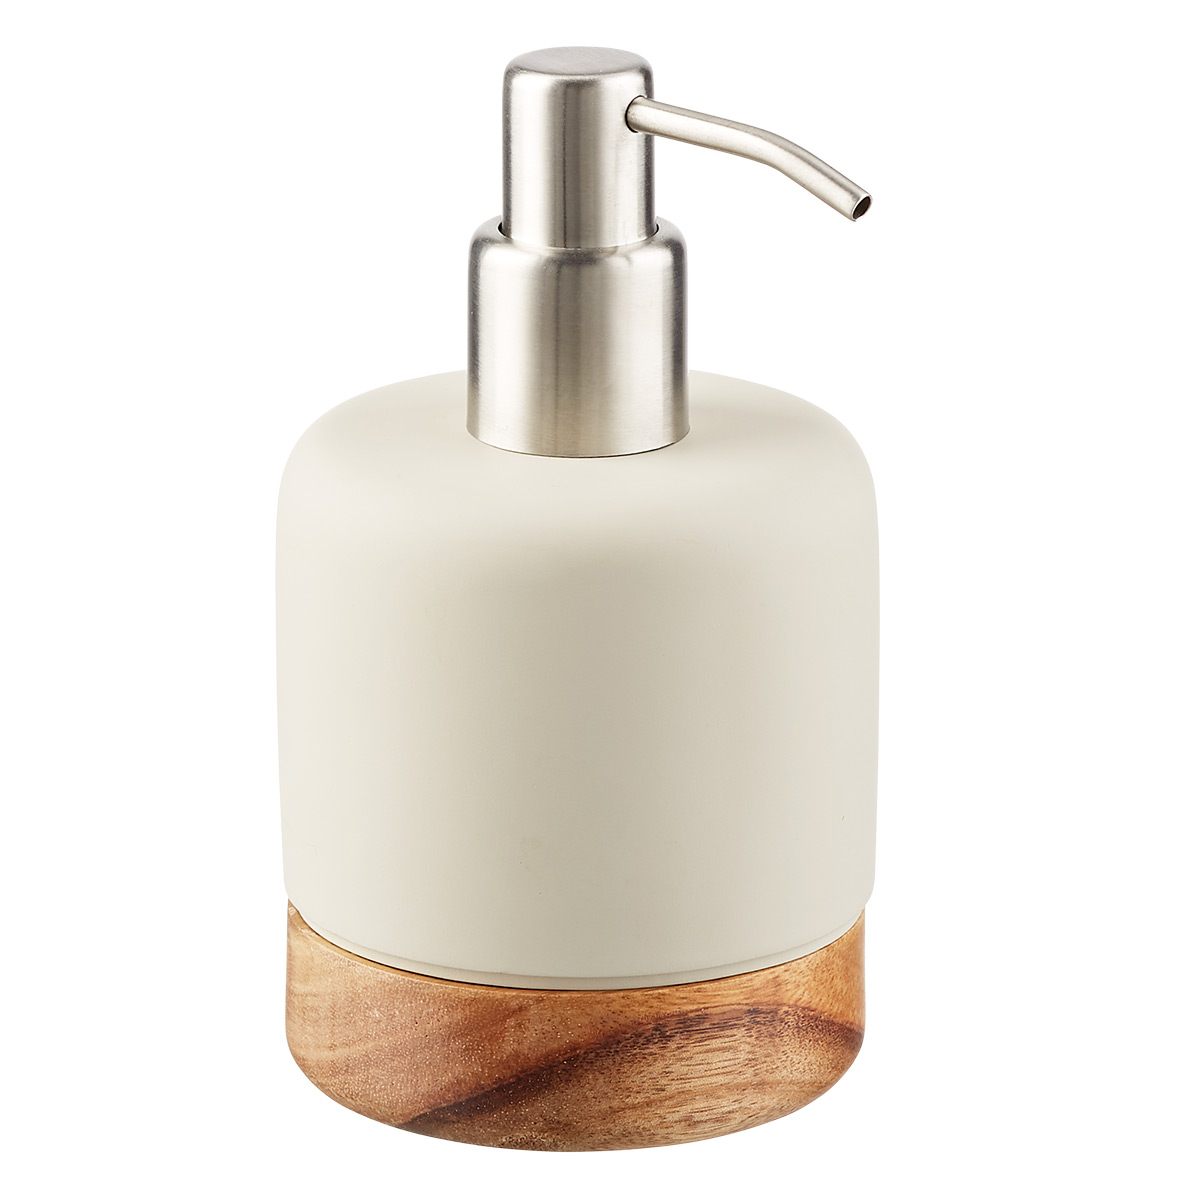 5 oz. Cement & Acacia Soap Dispenser